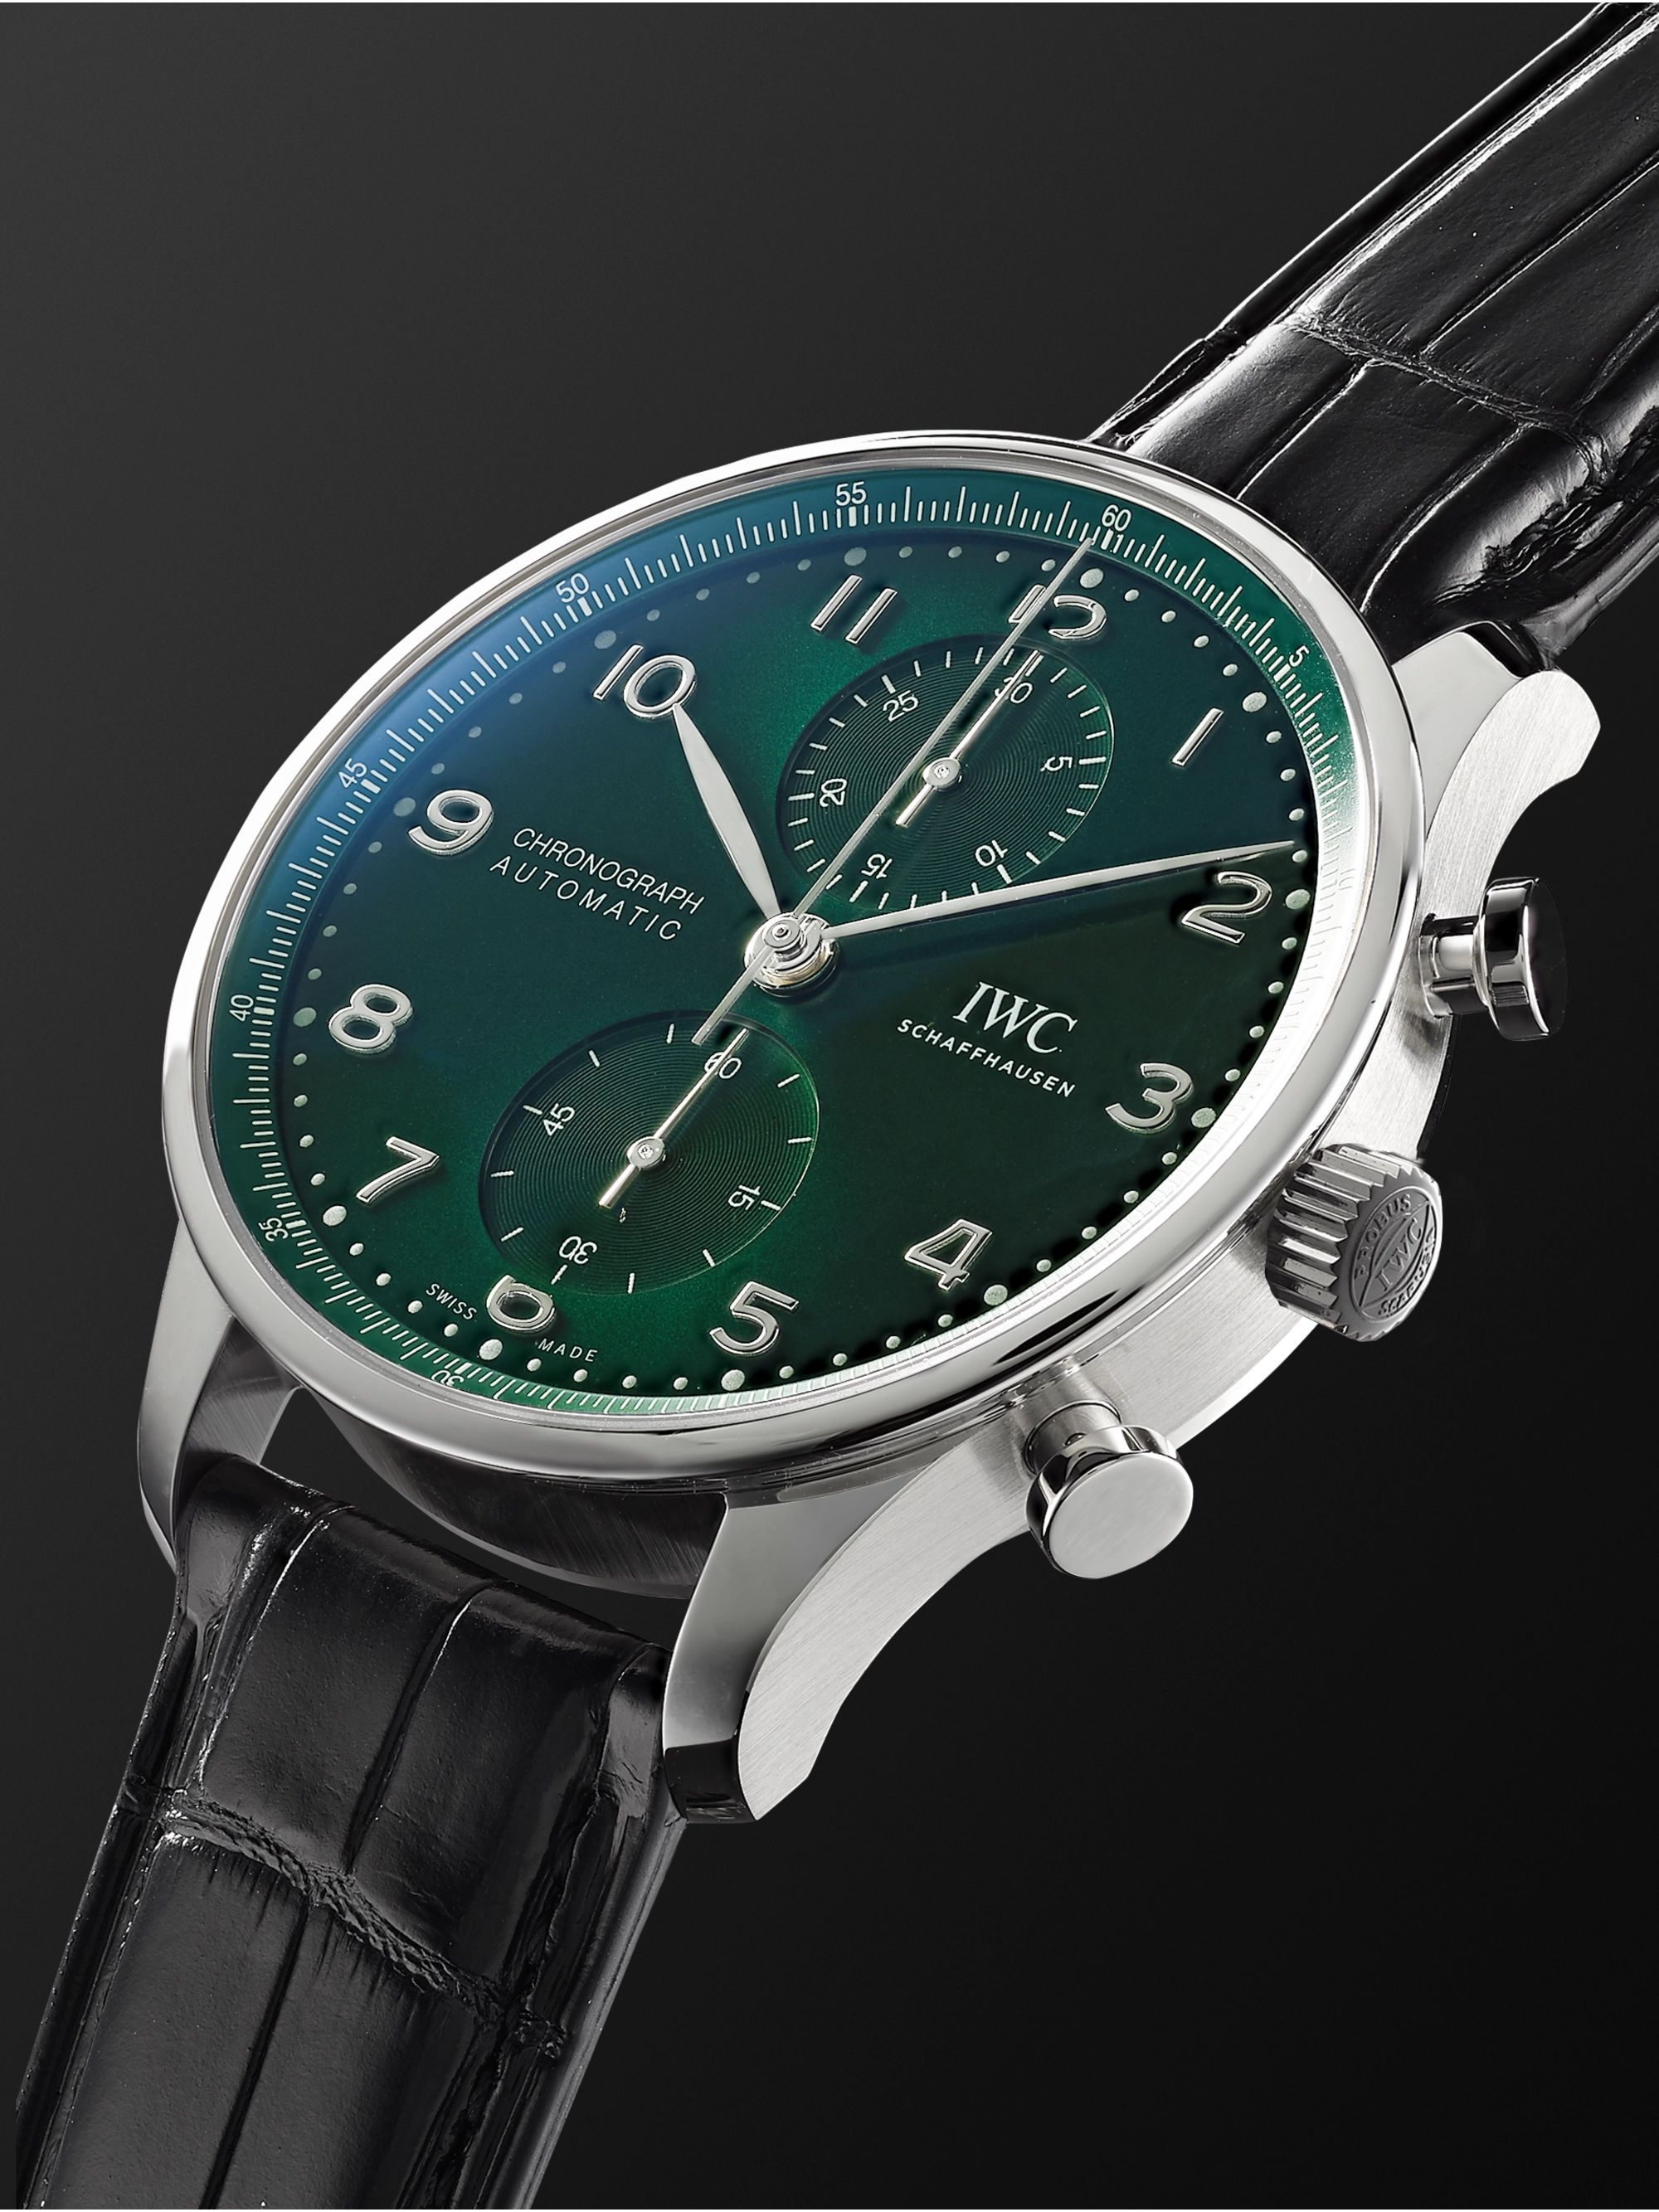 IWC SCHAFFHAUSEN Portugieser Automatic Chronograph 41mm Stainless Steel and Alligator Watch, Ref. No. IW371615